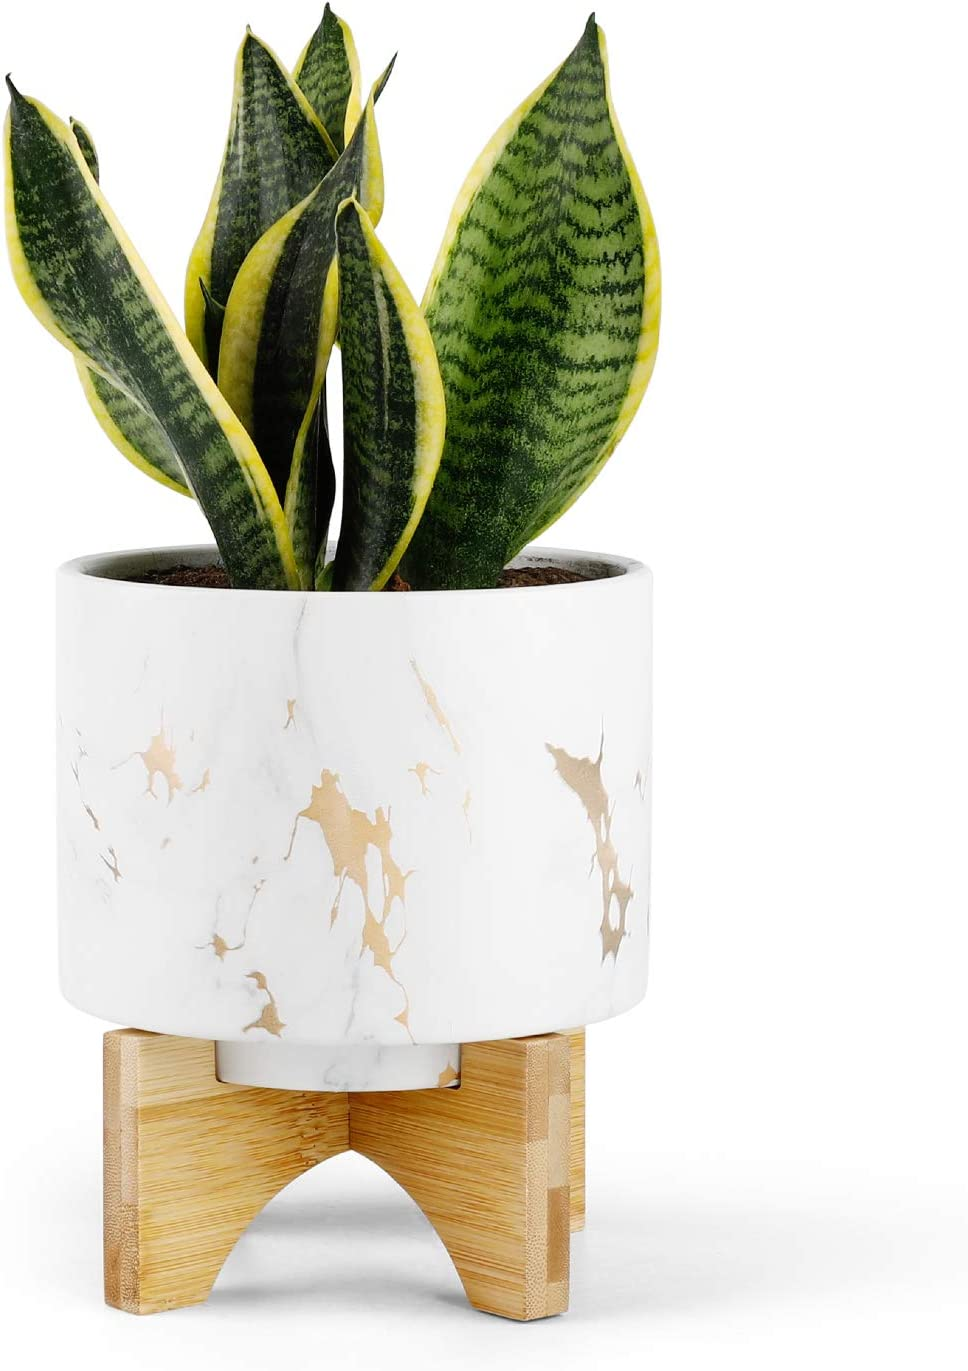 Medium Plant Pot - 5.5 Inch White Marble Ceramic Planters for Small Snake Plant Seeding, with Arched Bamboo Stand